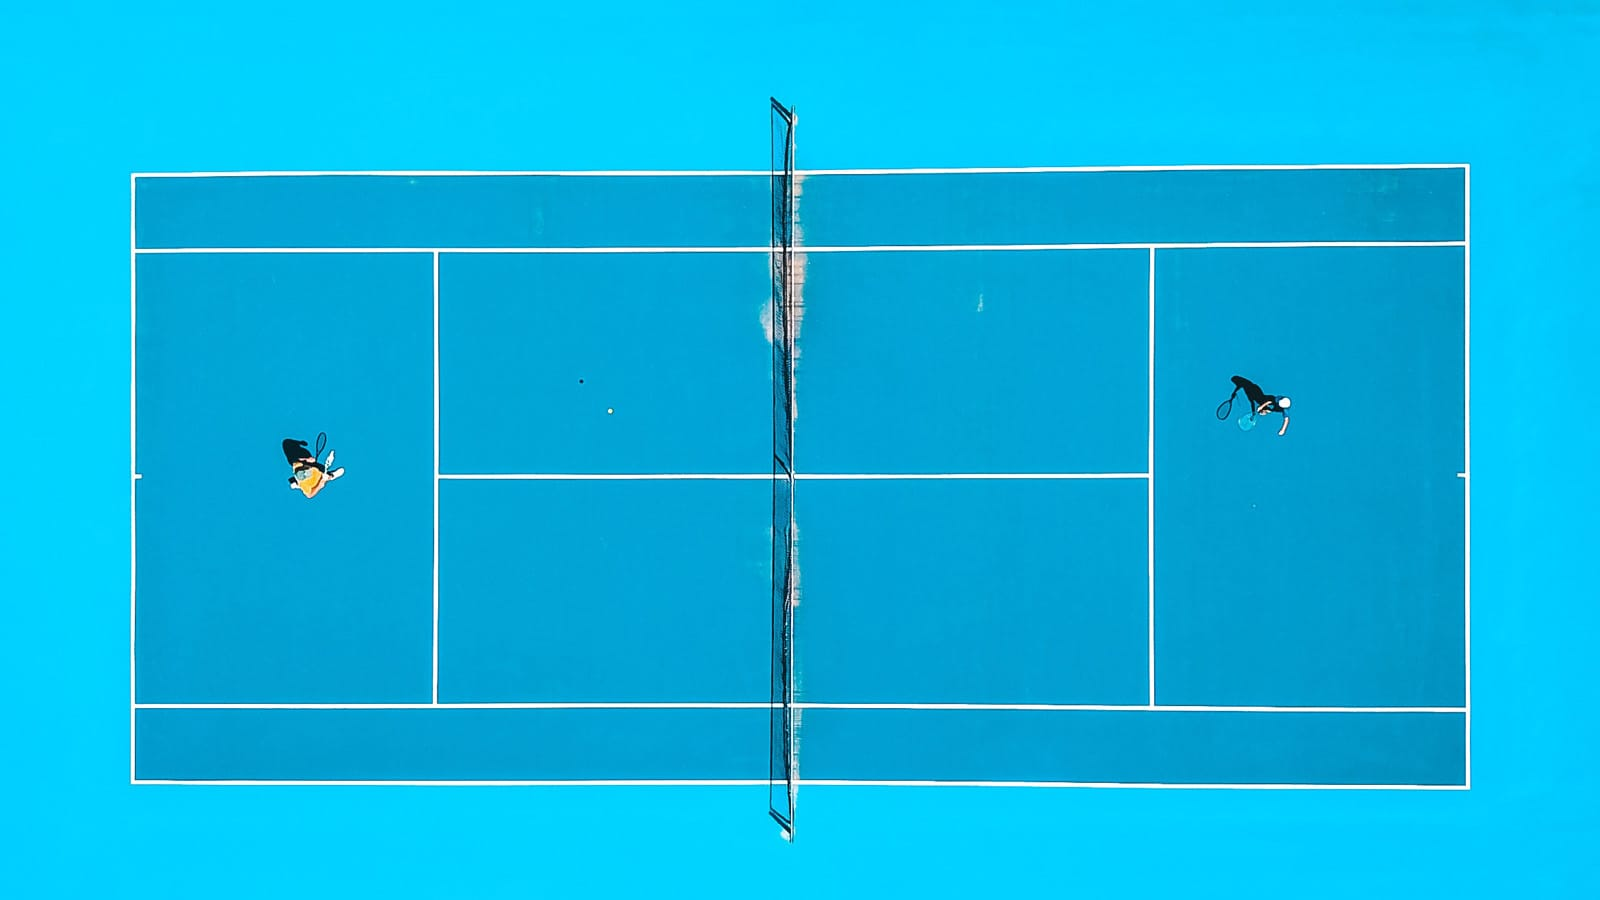 Tennis playfield from above